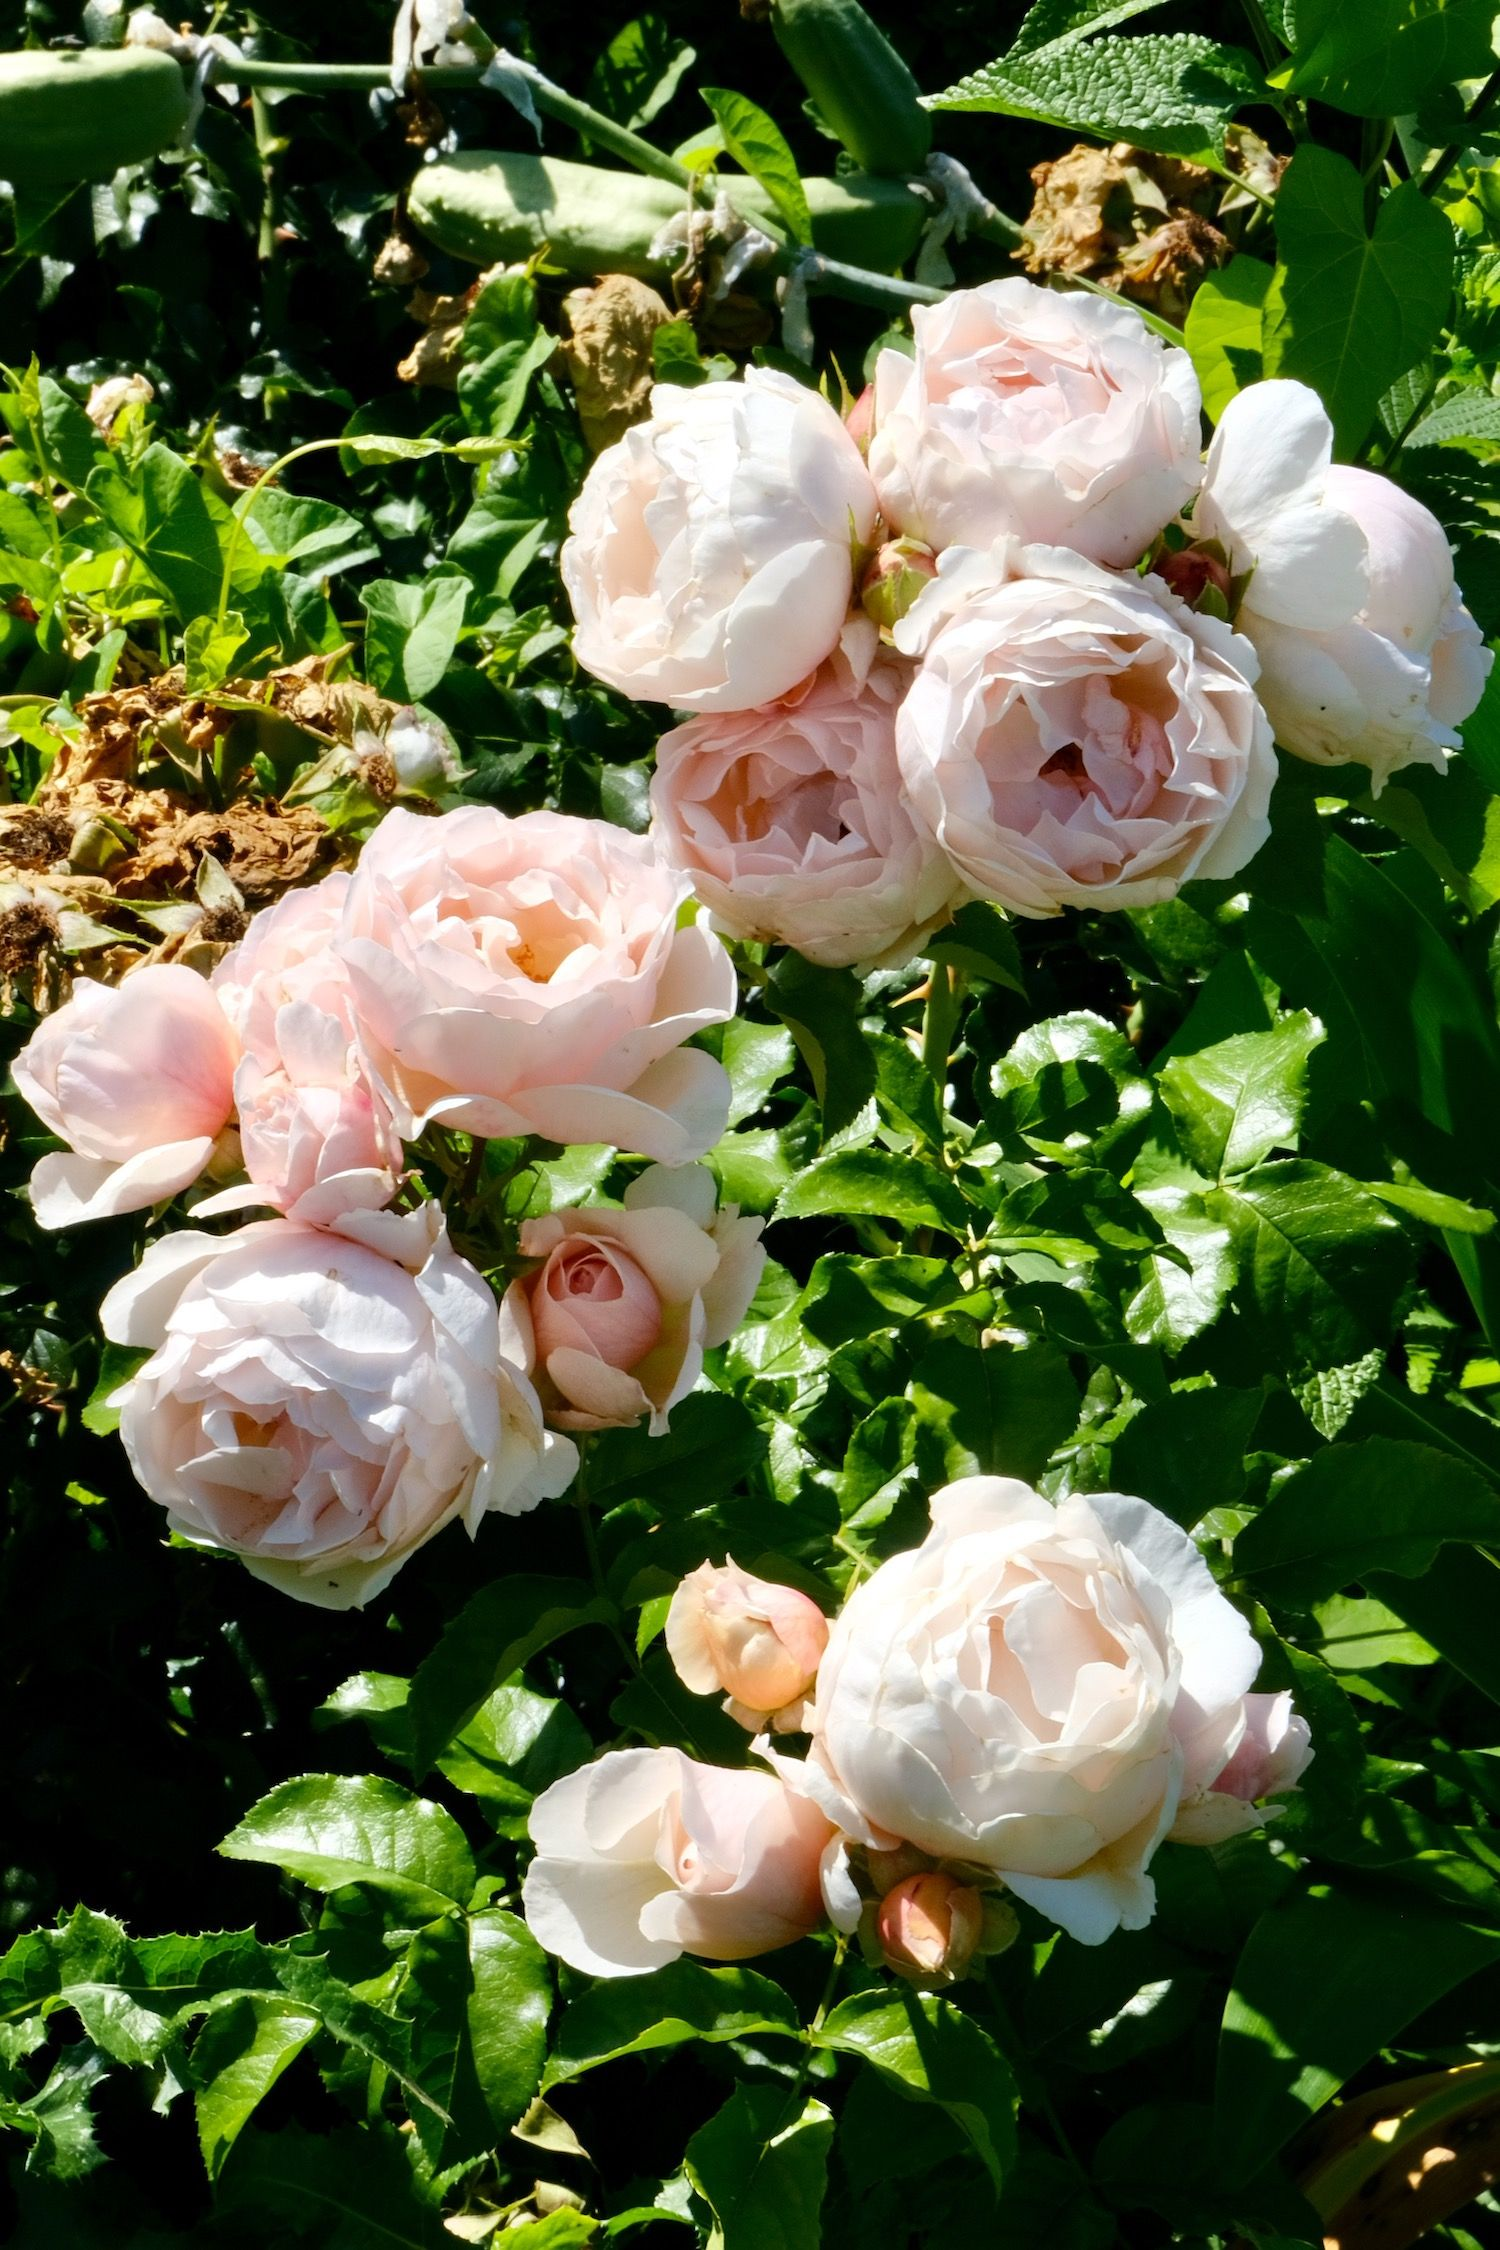 These light pink garden roses in the Jardin des Tuileries in Paris are just gorgeous. One of the best parts of Paris in June is seeing all of the roses #Paris #RosesParis #ParisRoses #GardenRoses #PinkGardenRoses #PalePinkRoses #PalePinkGardenRoses #PetalPinkRoses #PetalPinkGardenRoses #RosesInParis #ParisInJune #JardinDesTuileries #TuileriesGardenRoses #JardinDesTuileriesRoses